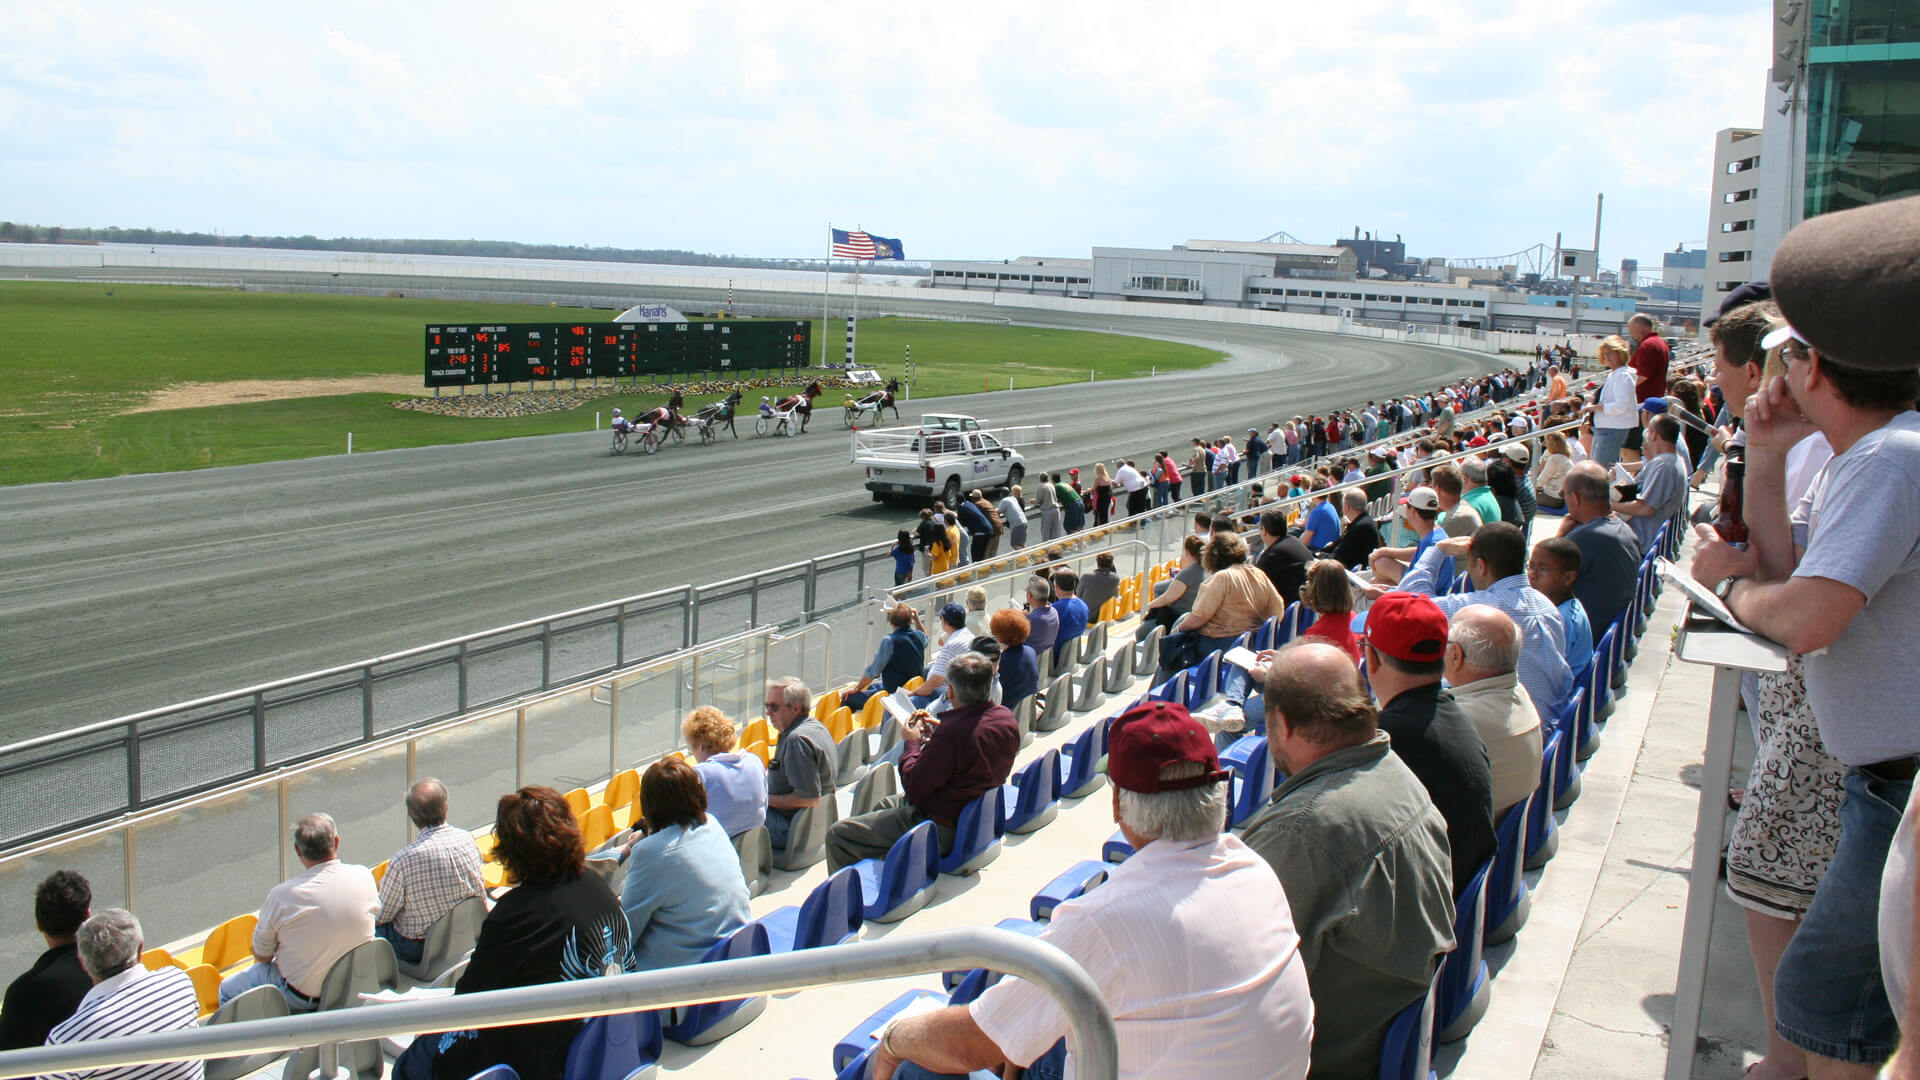 HarrahS Racetrack